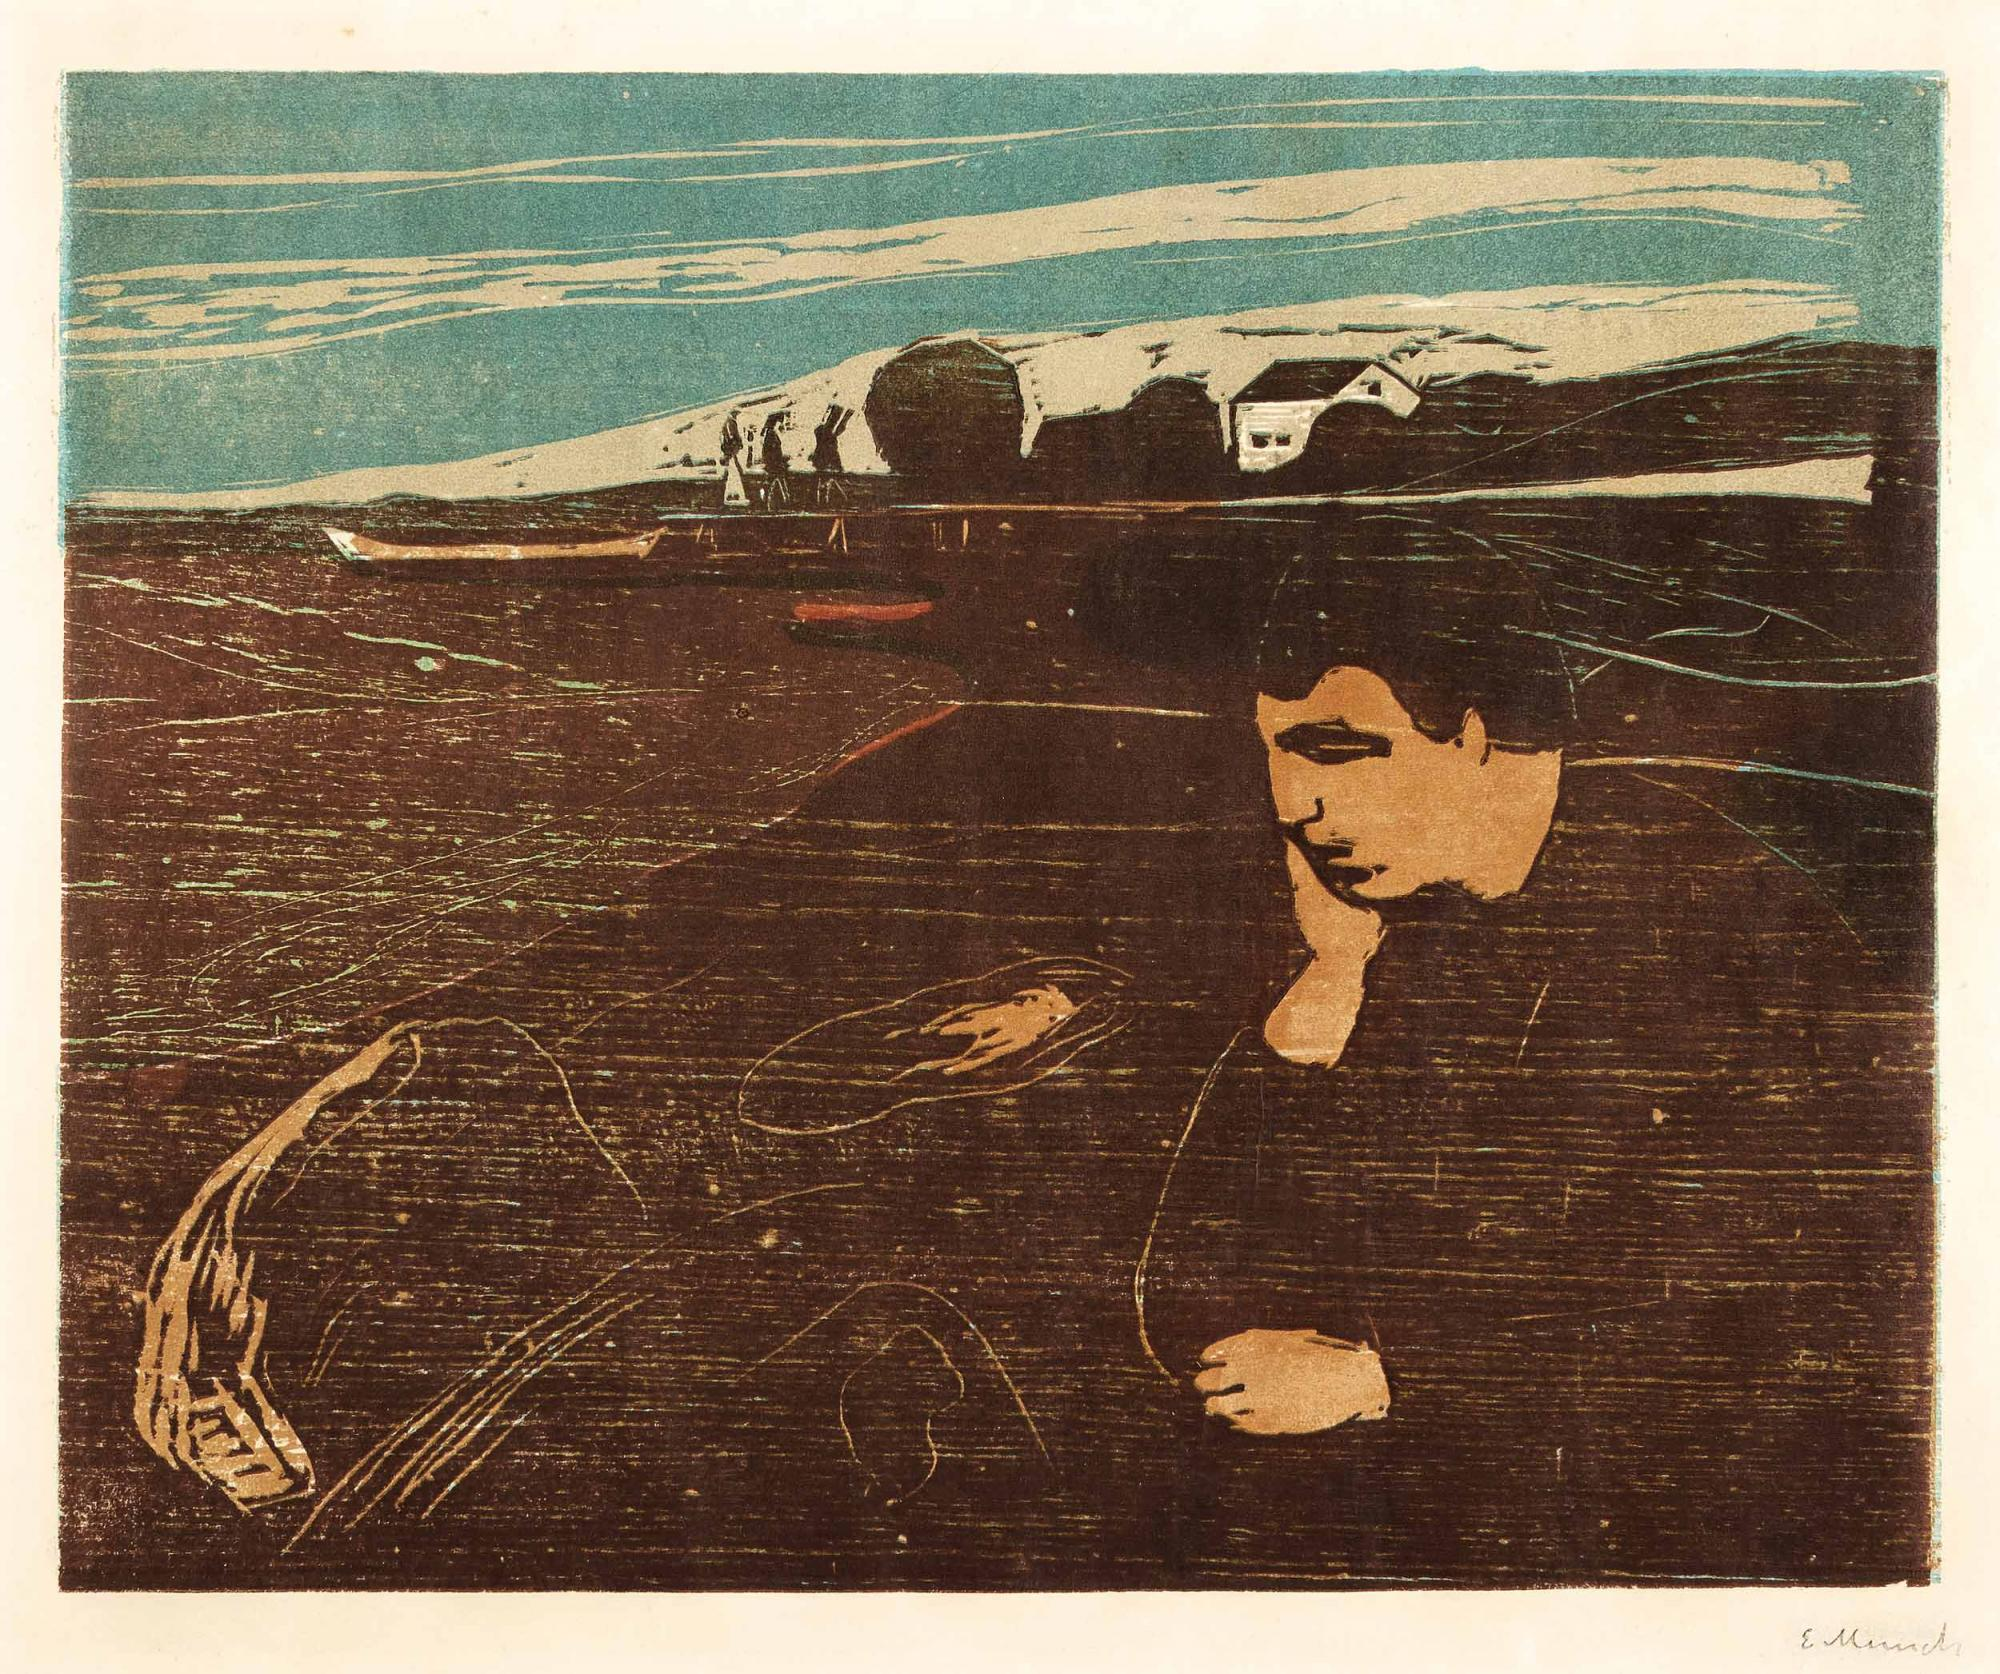 Lot-69-Edvard-Munch-Melancholy.jpg